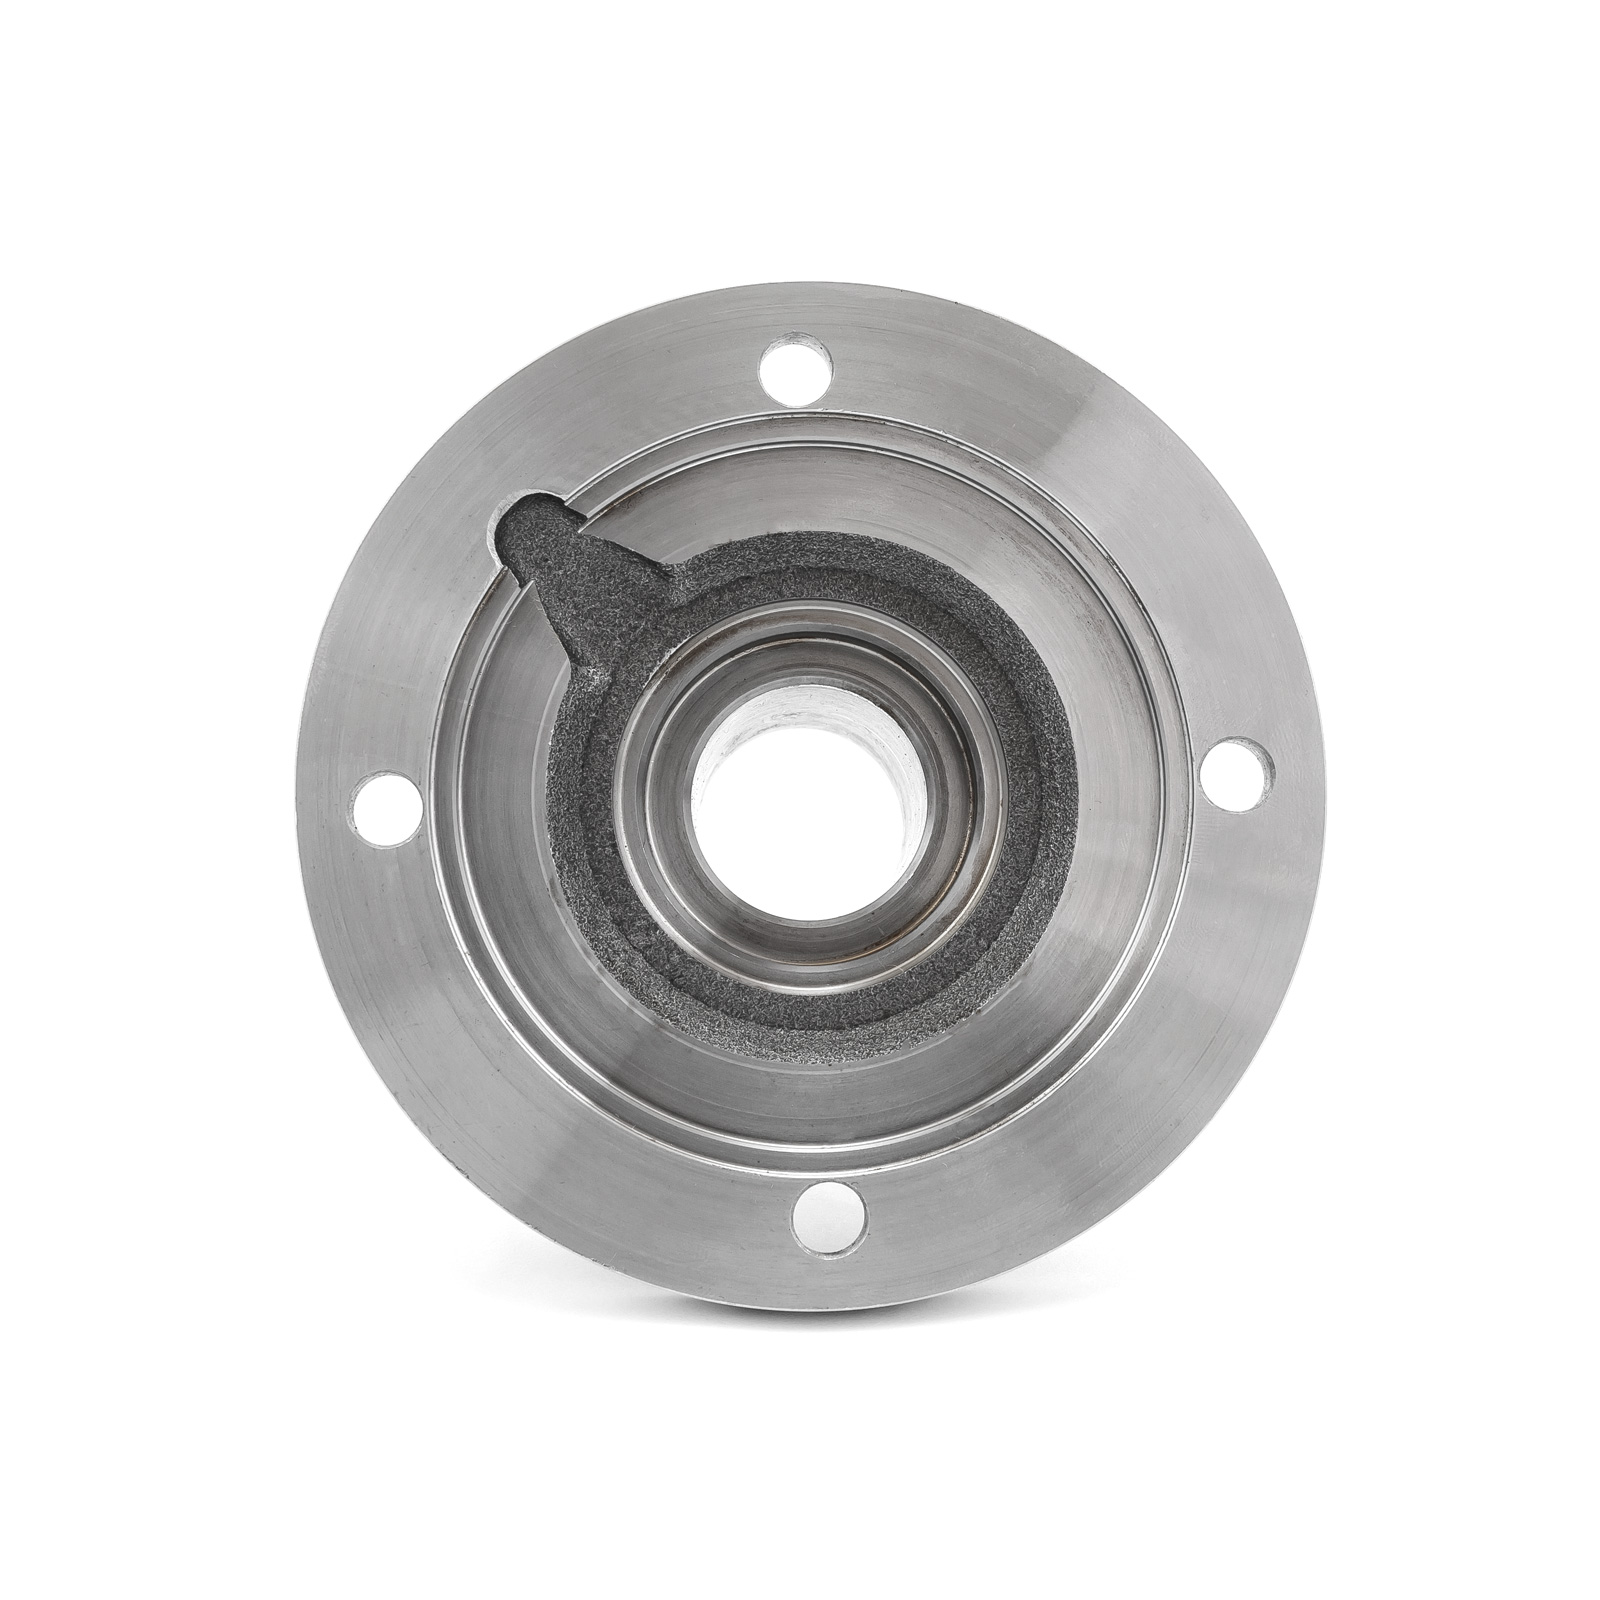 PCE® PCE669.1001 Ford Mustang Falcon 1964-73 Toploader 4 Speed Input Shaft Bearing WT296-6A